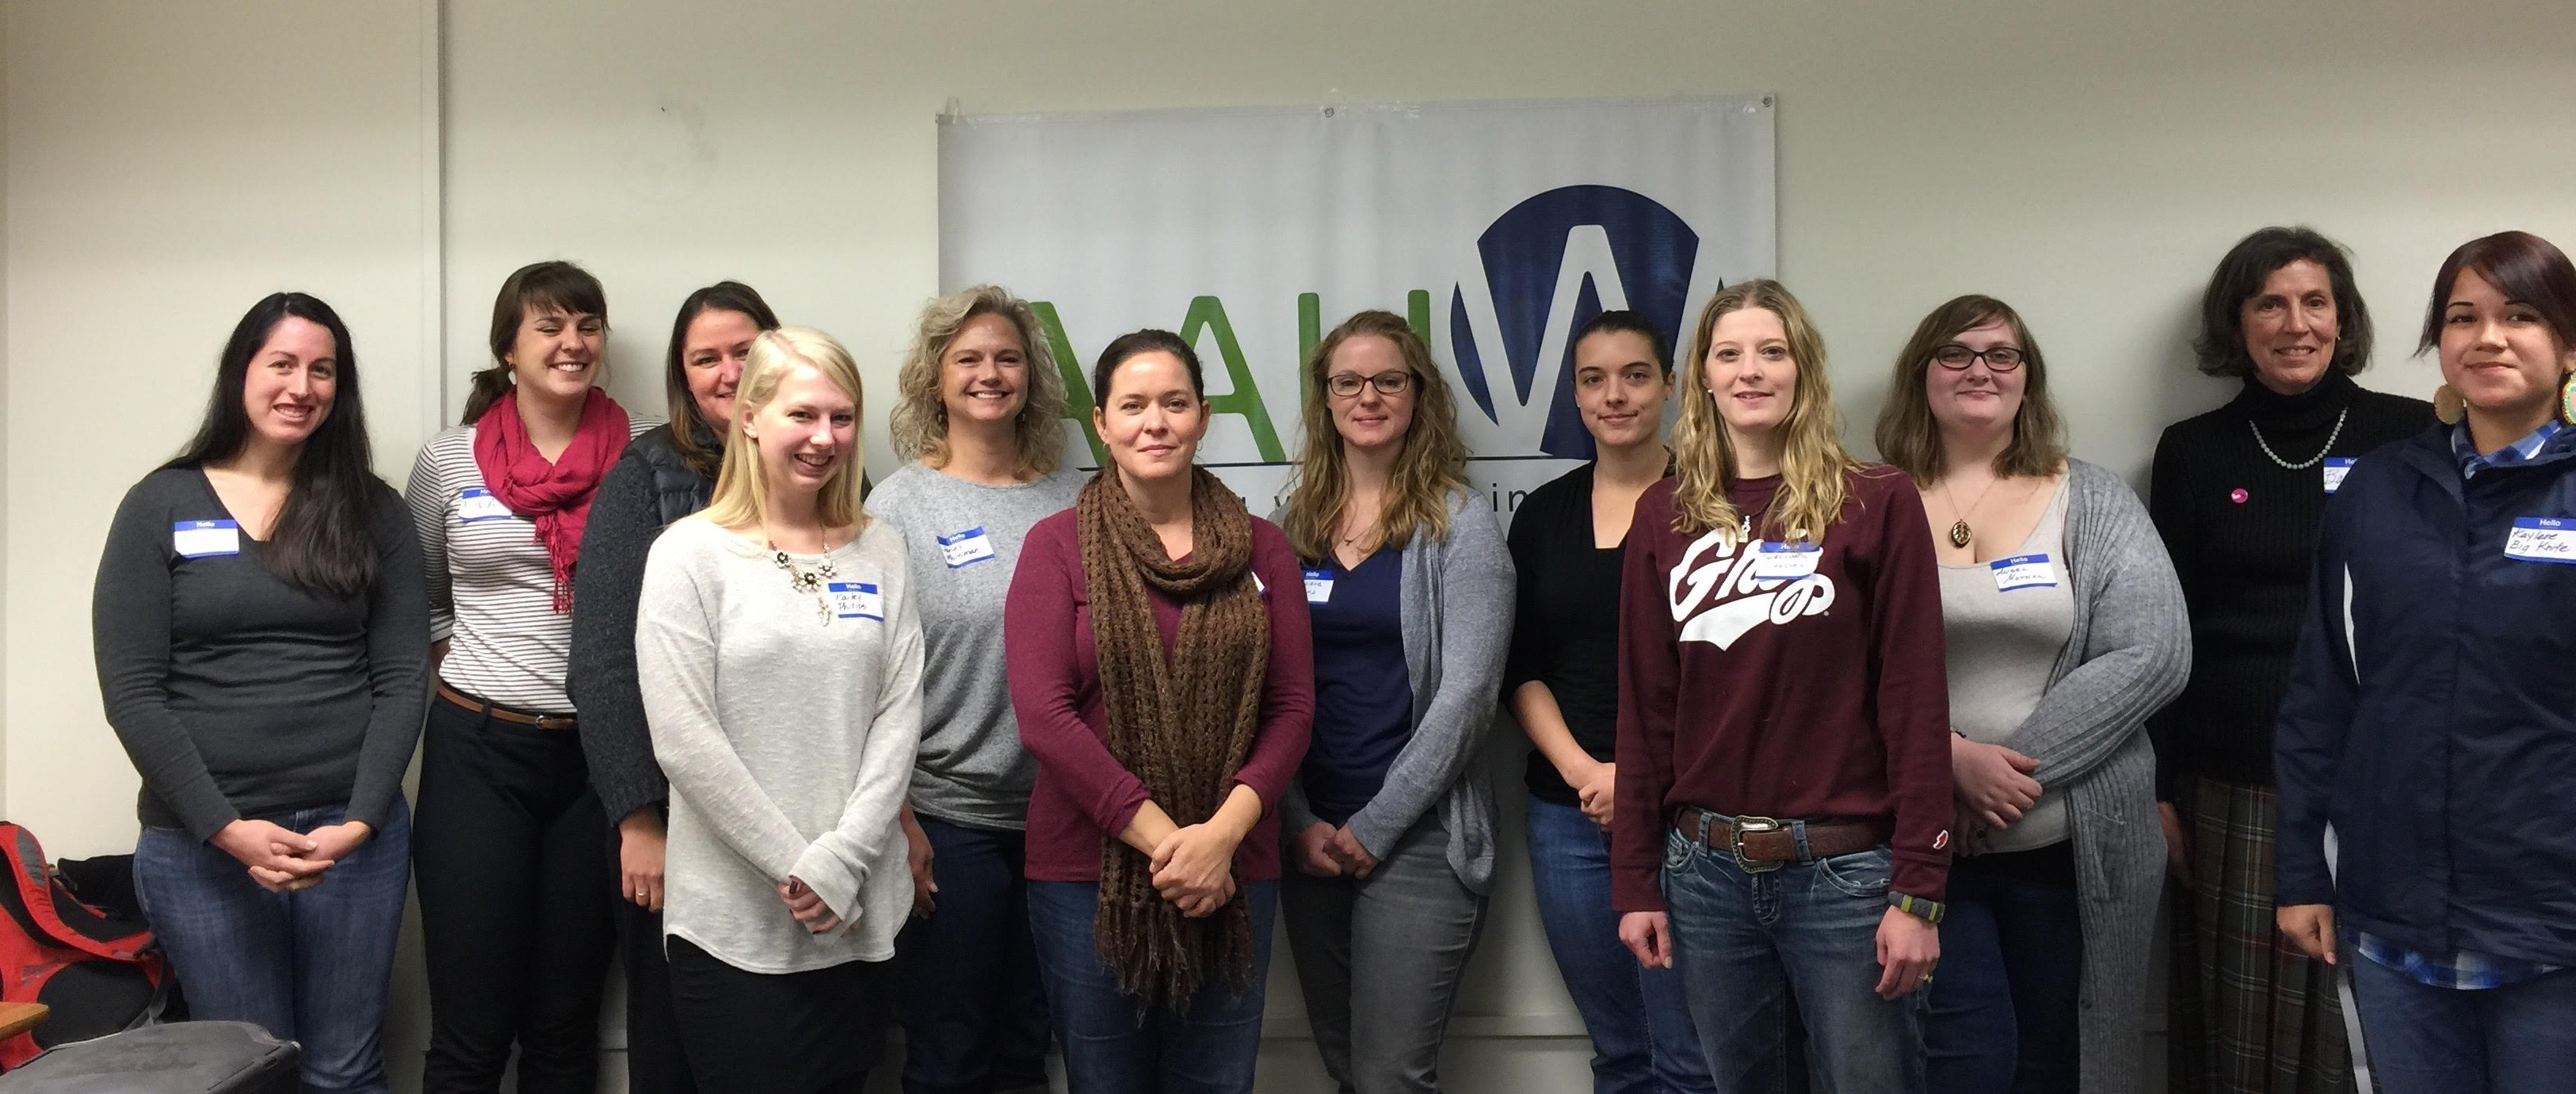 https://aauw-mt.aauw.net/files/2013/11/11-14-2015-pic1-crop-MISSOULA-SS-workshop-fr-GG-W-jpeg.jpg